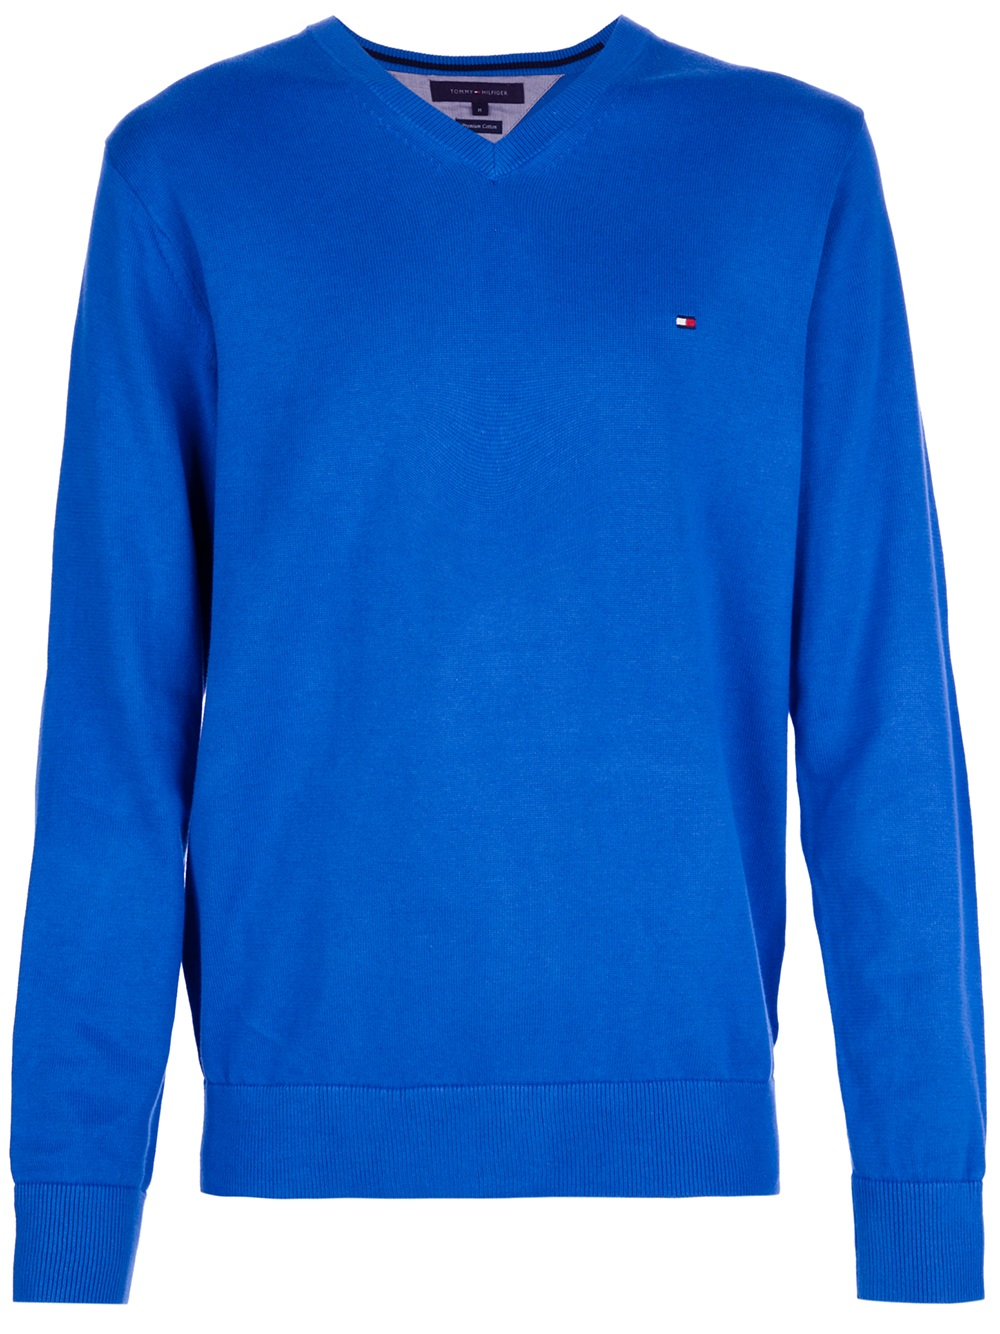 lyst tommy hilfiger vneck sweater in blue for men